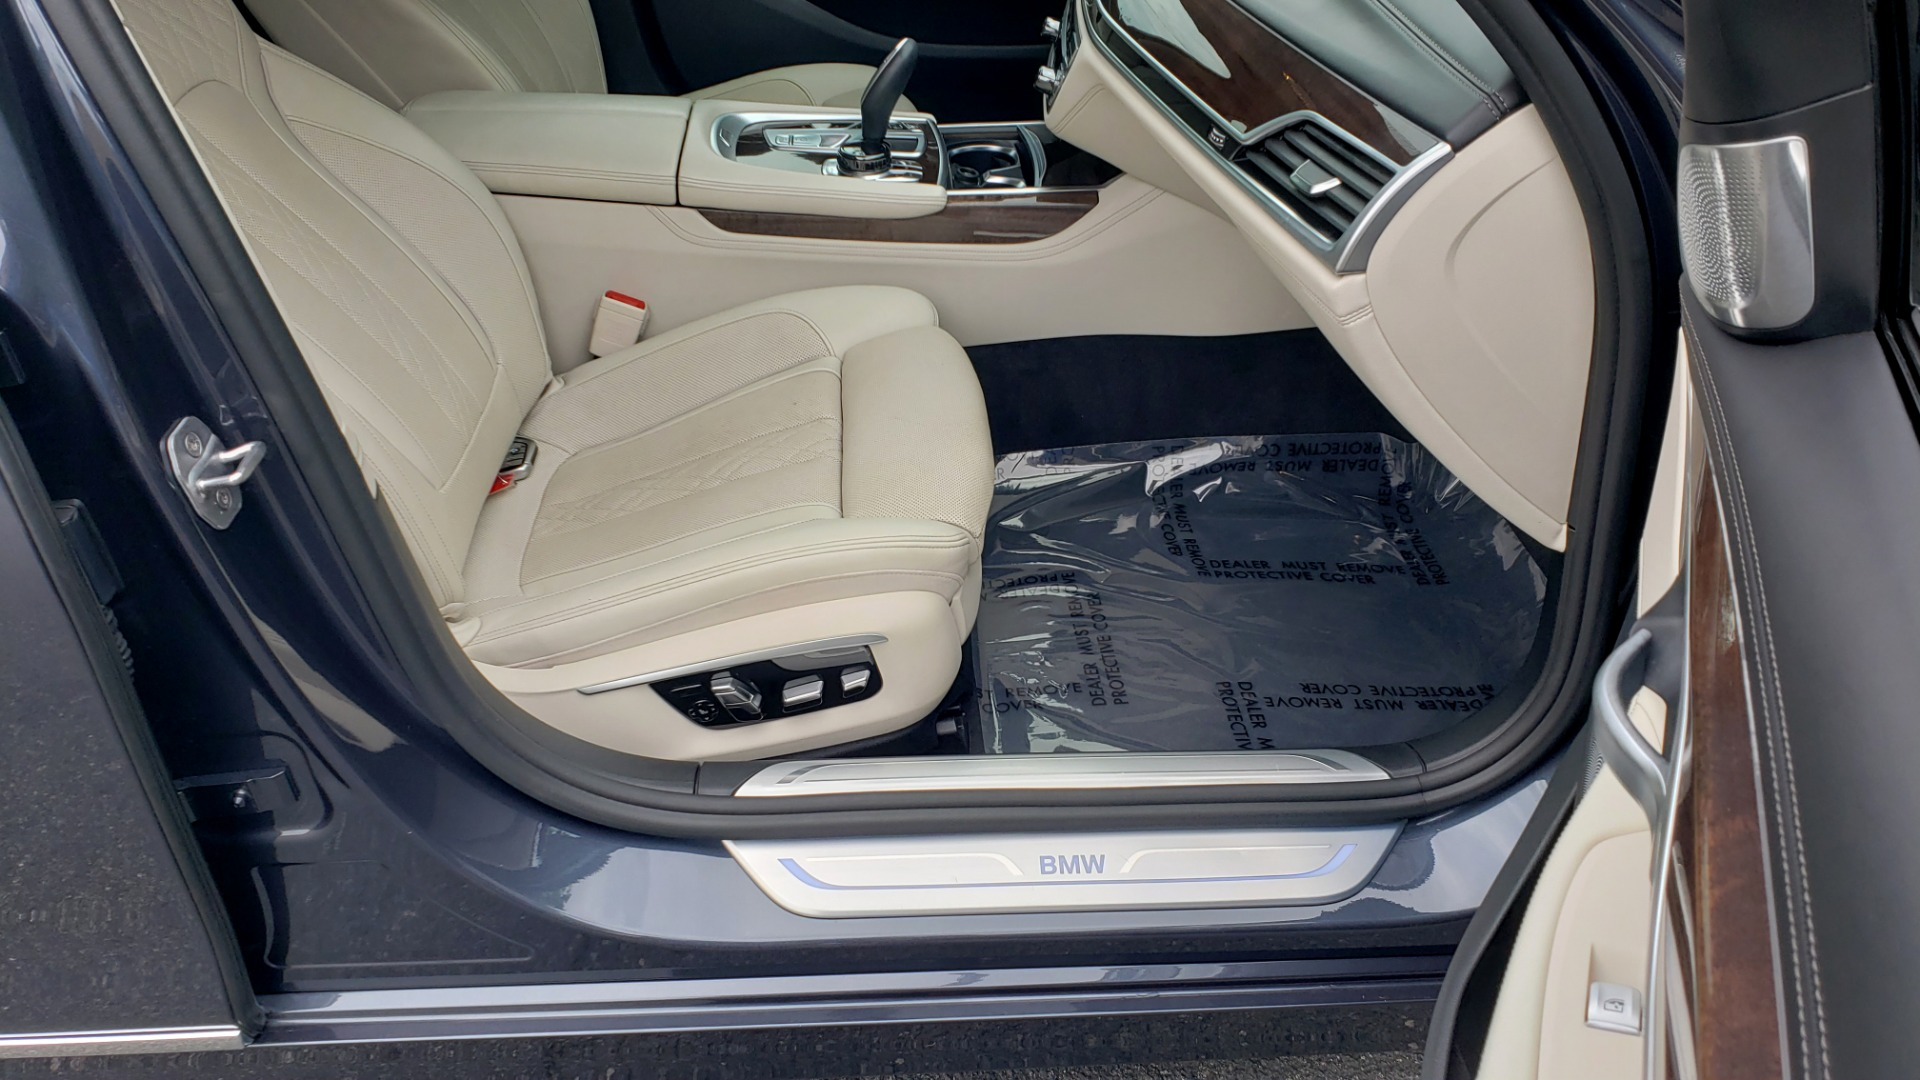 Used 2016 BMW 7 SERIES 750I EXEC PKG / DRVR ASST PLUS / CLD WTHR / SKY LOUNGE ROOF for sale Sold at Formula Imports in Charlotte NC 28227 70